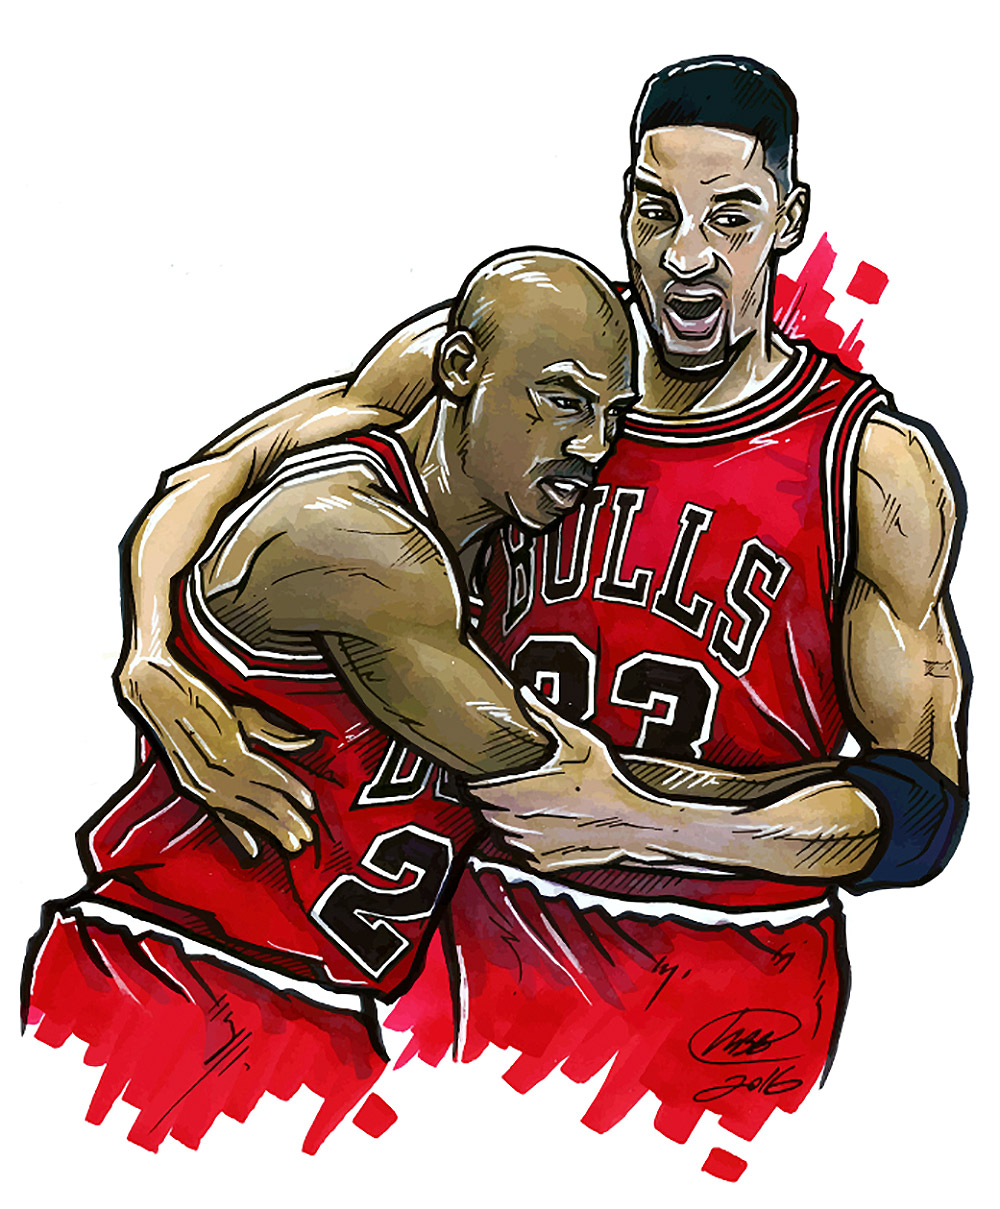 Sports Illustrations by M. Brian Bowens